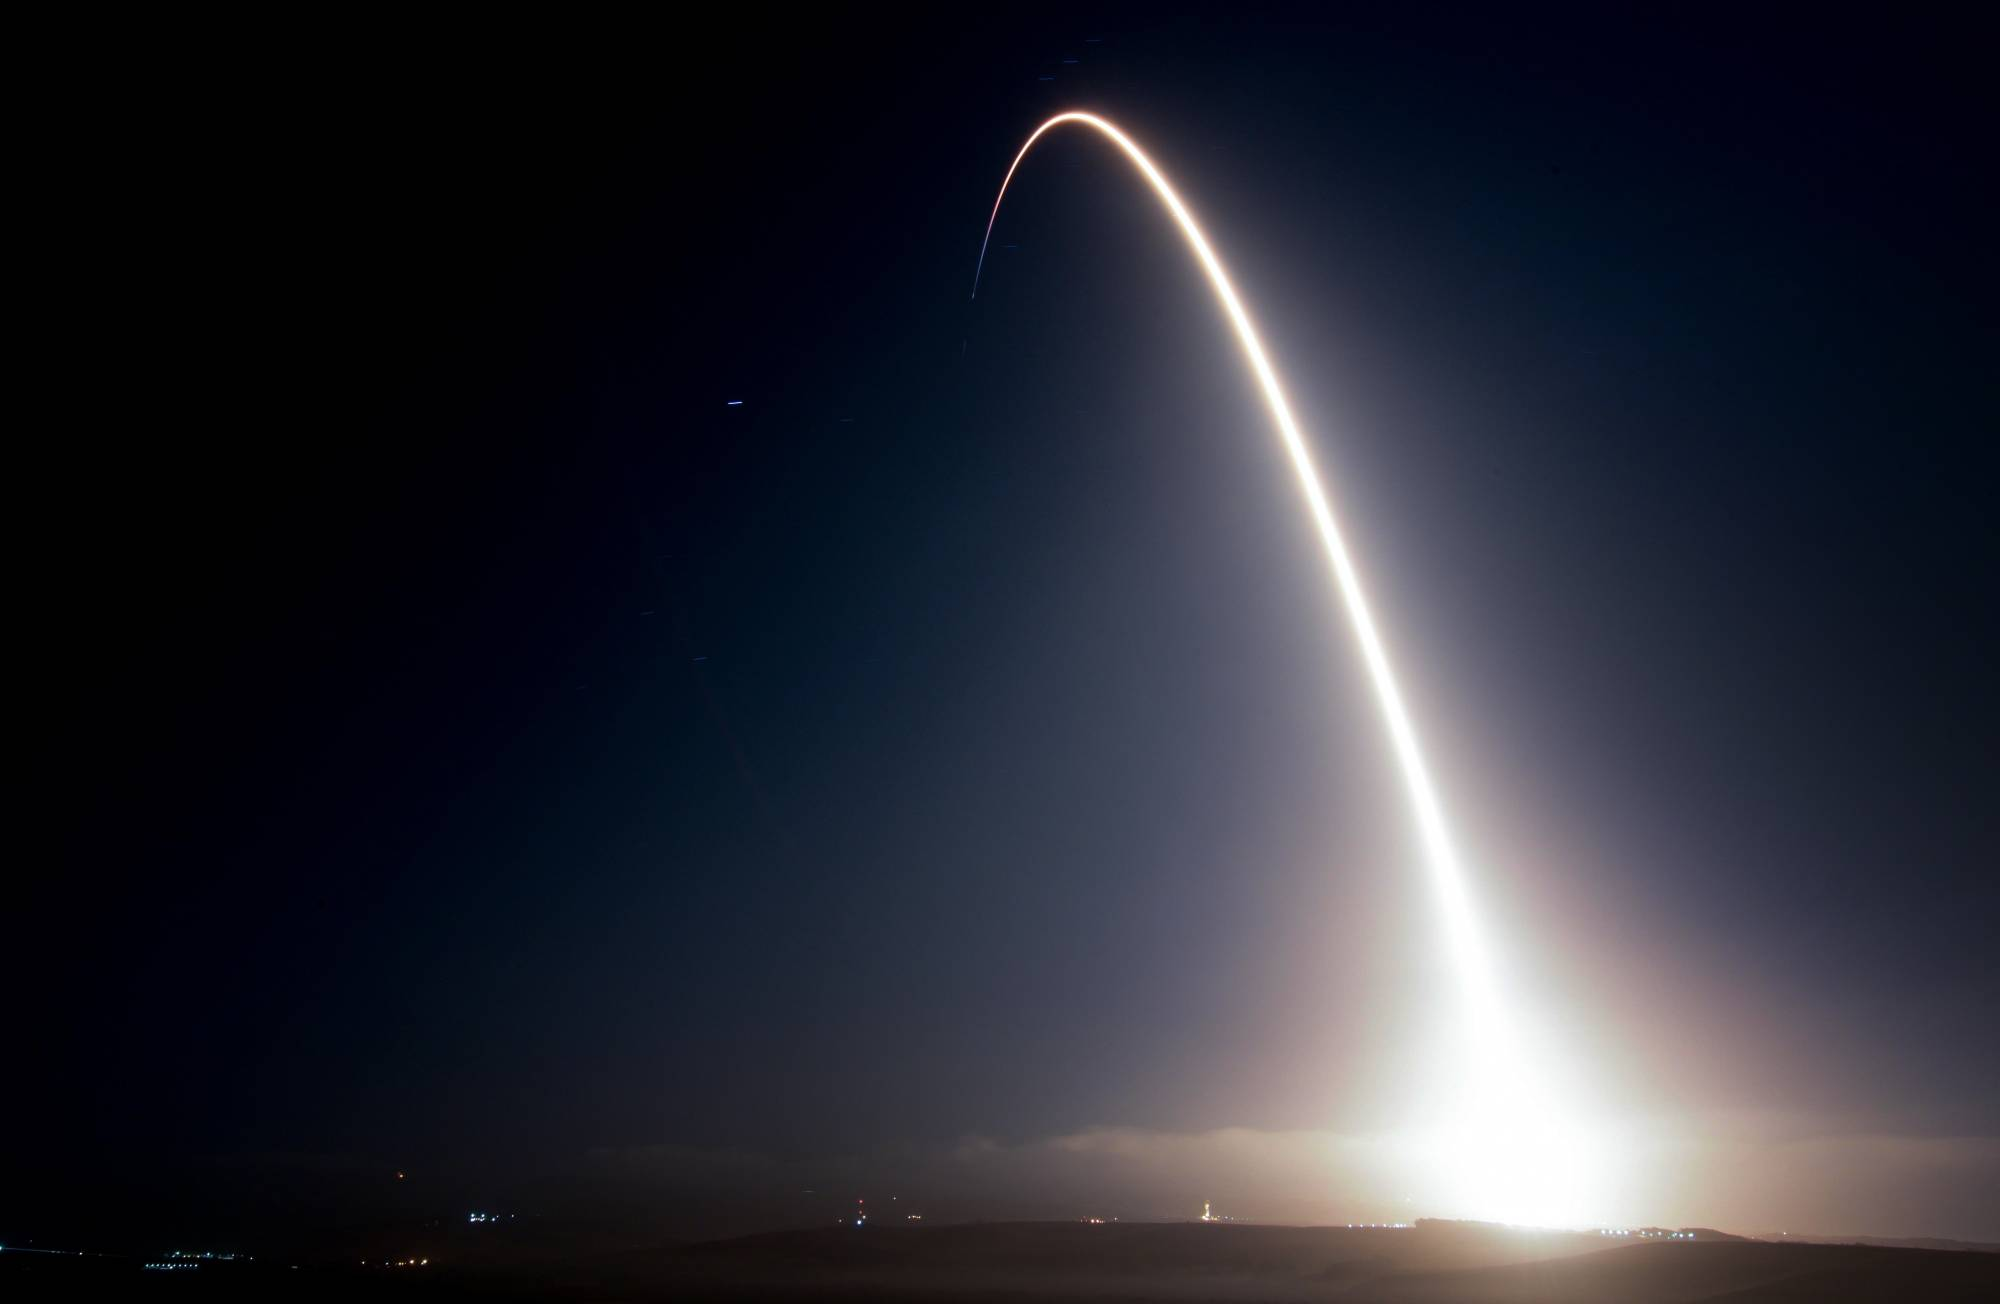 This photo provided by Vandenberg Air Force Base shows the launch of a SpaceX Falcon 9 rocket from the Space Launch Complex-4 at Vandenberg Air Force Base, Calif., Monday, Oct. 9, 2017. Ten new satellites for Iridium Communications Inc. have been carried into orbit by a SpaceX Falcon 9 rocket launched from California. The booster lifted off from coastal Vandenberg Air Force Base before dawn Monday and its first stage successfully returned from space and set down on a landing platform floating in the Pacific Ocean as the second stage went on to deploy the satellites in orbit. (Senior Airman Ian Dudley/Vandenberg Air Force Base via AP)